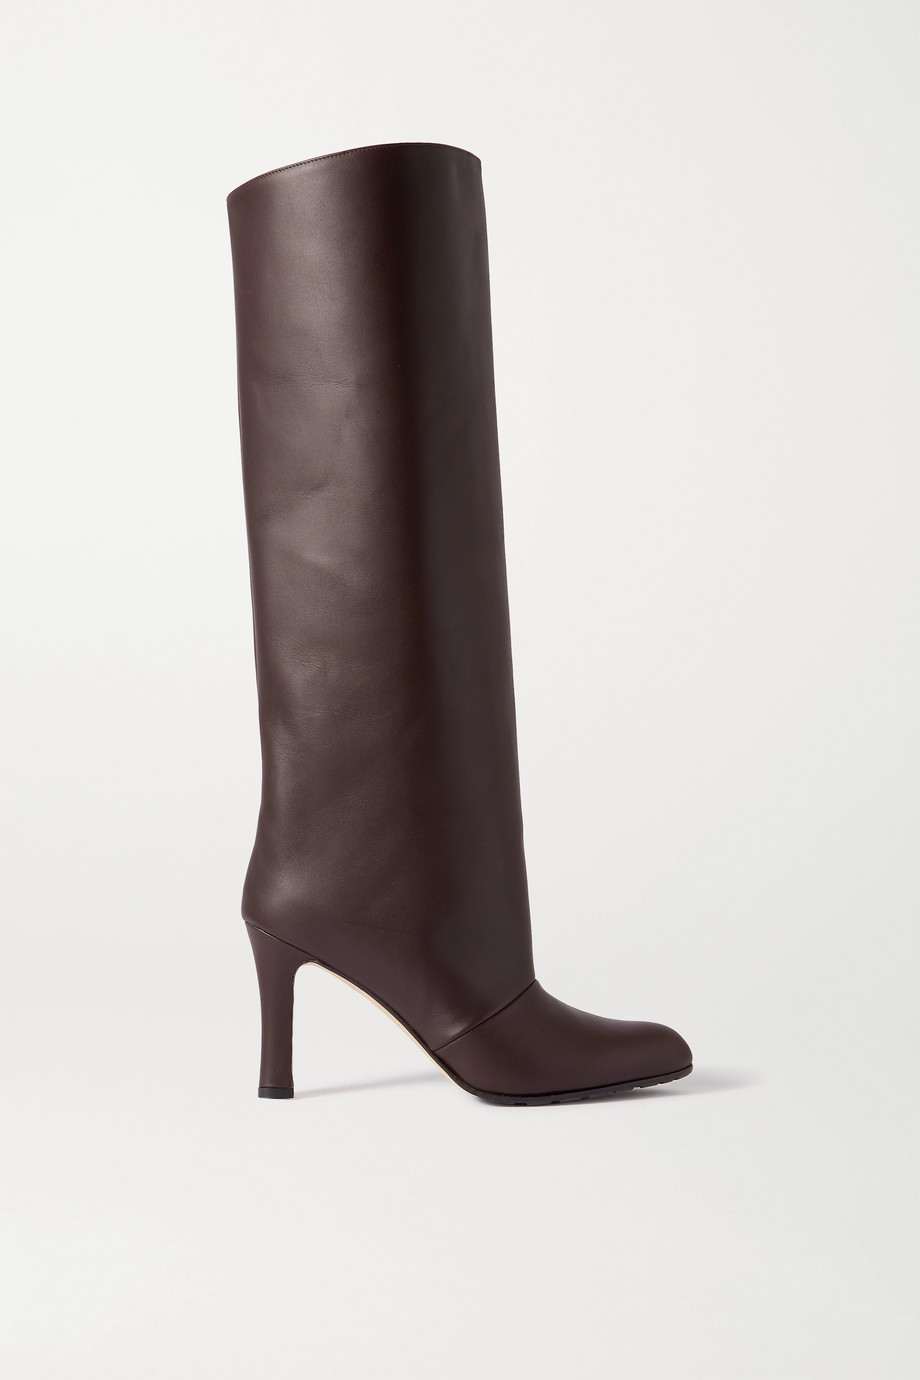 Manolo Blahnik Khomobi Gum leather knee boots